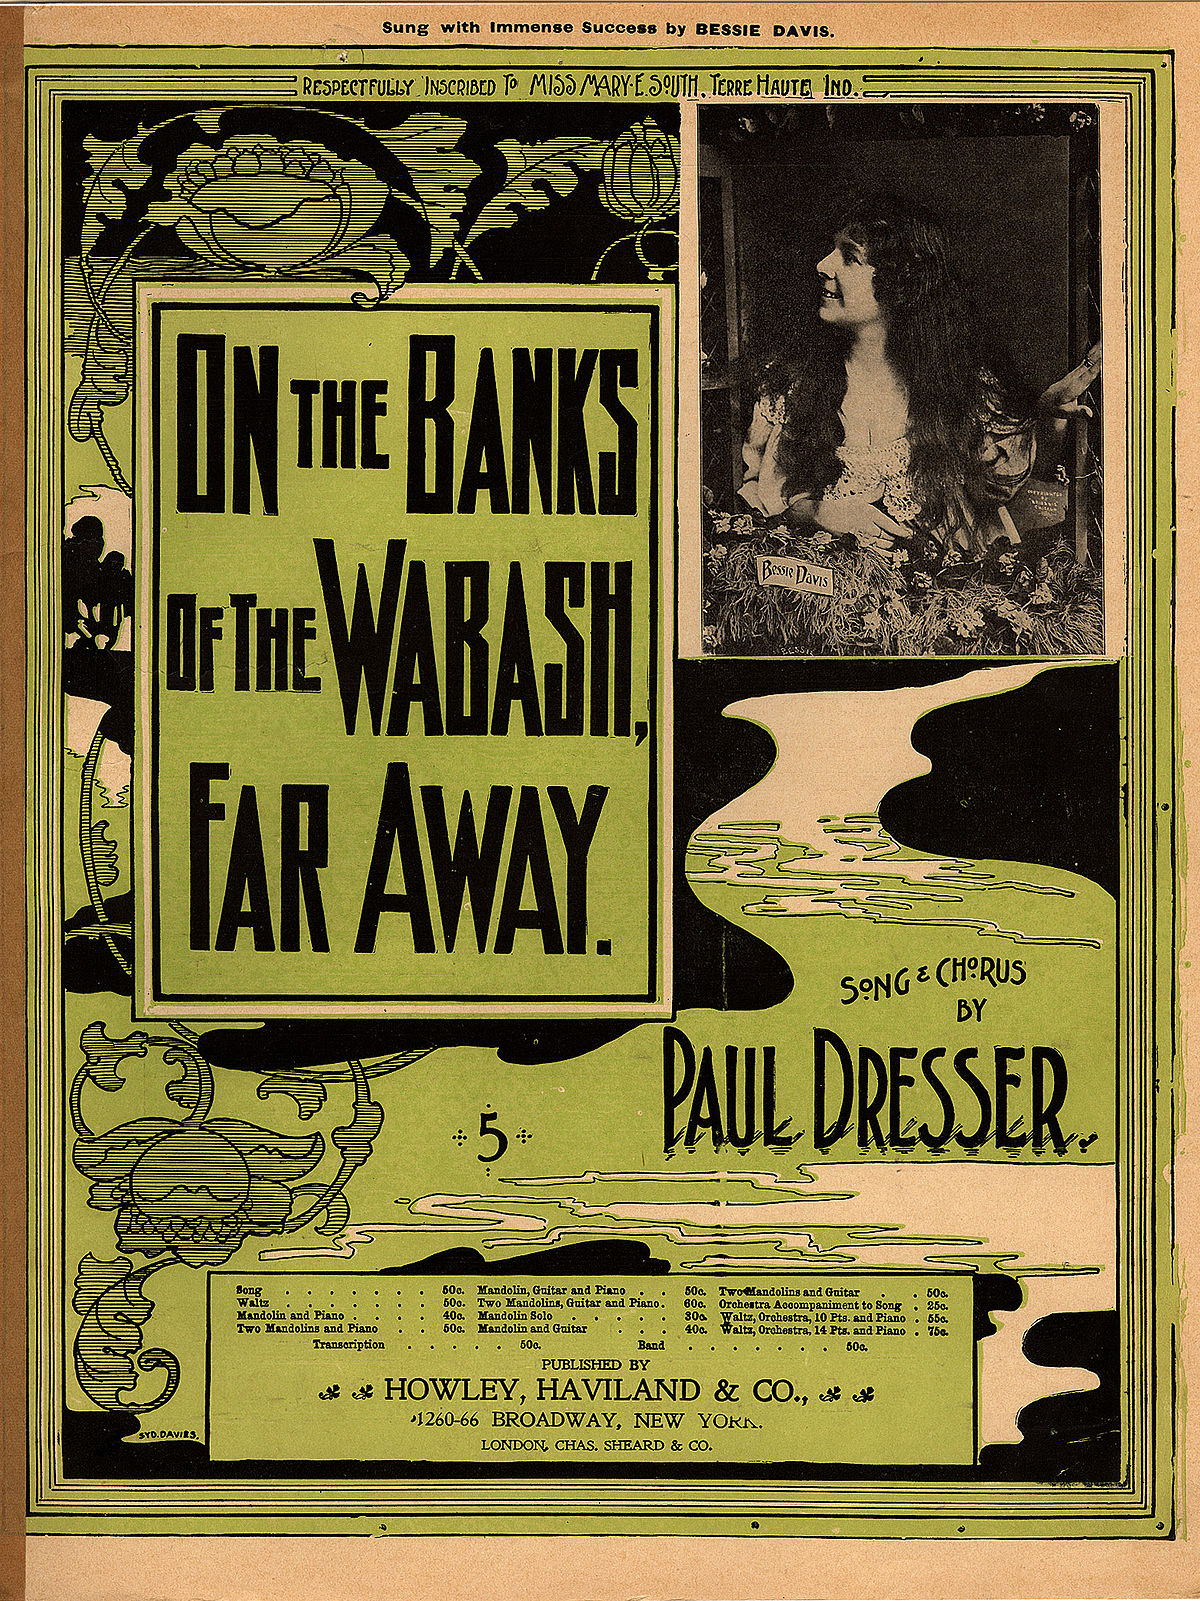 On the Banks of the Wabash, Far Away - Wikipedia